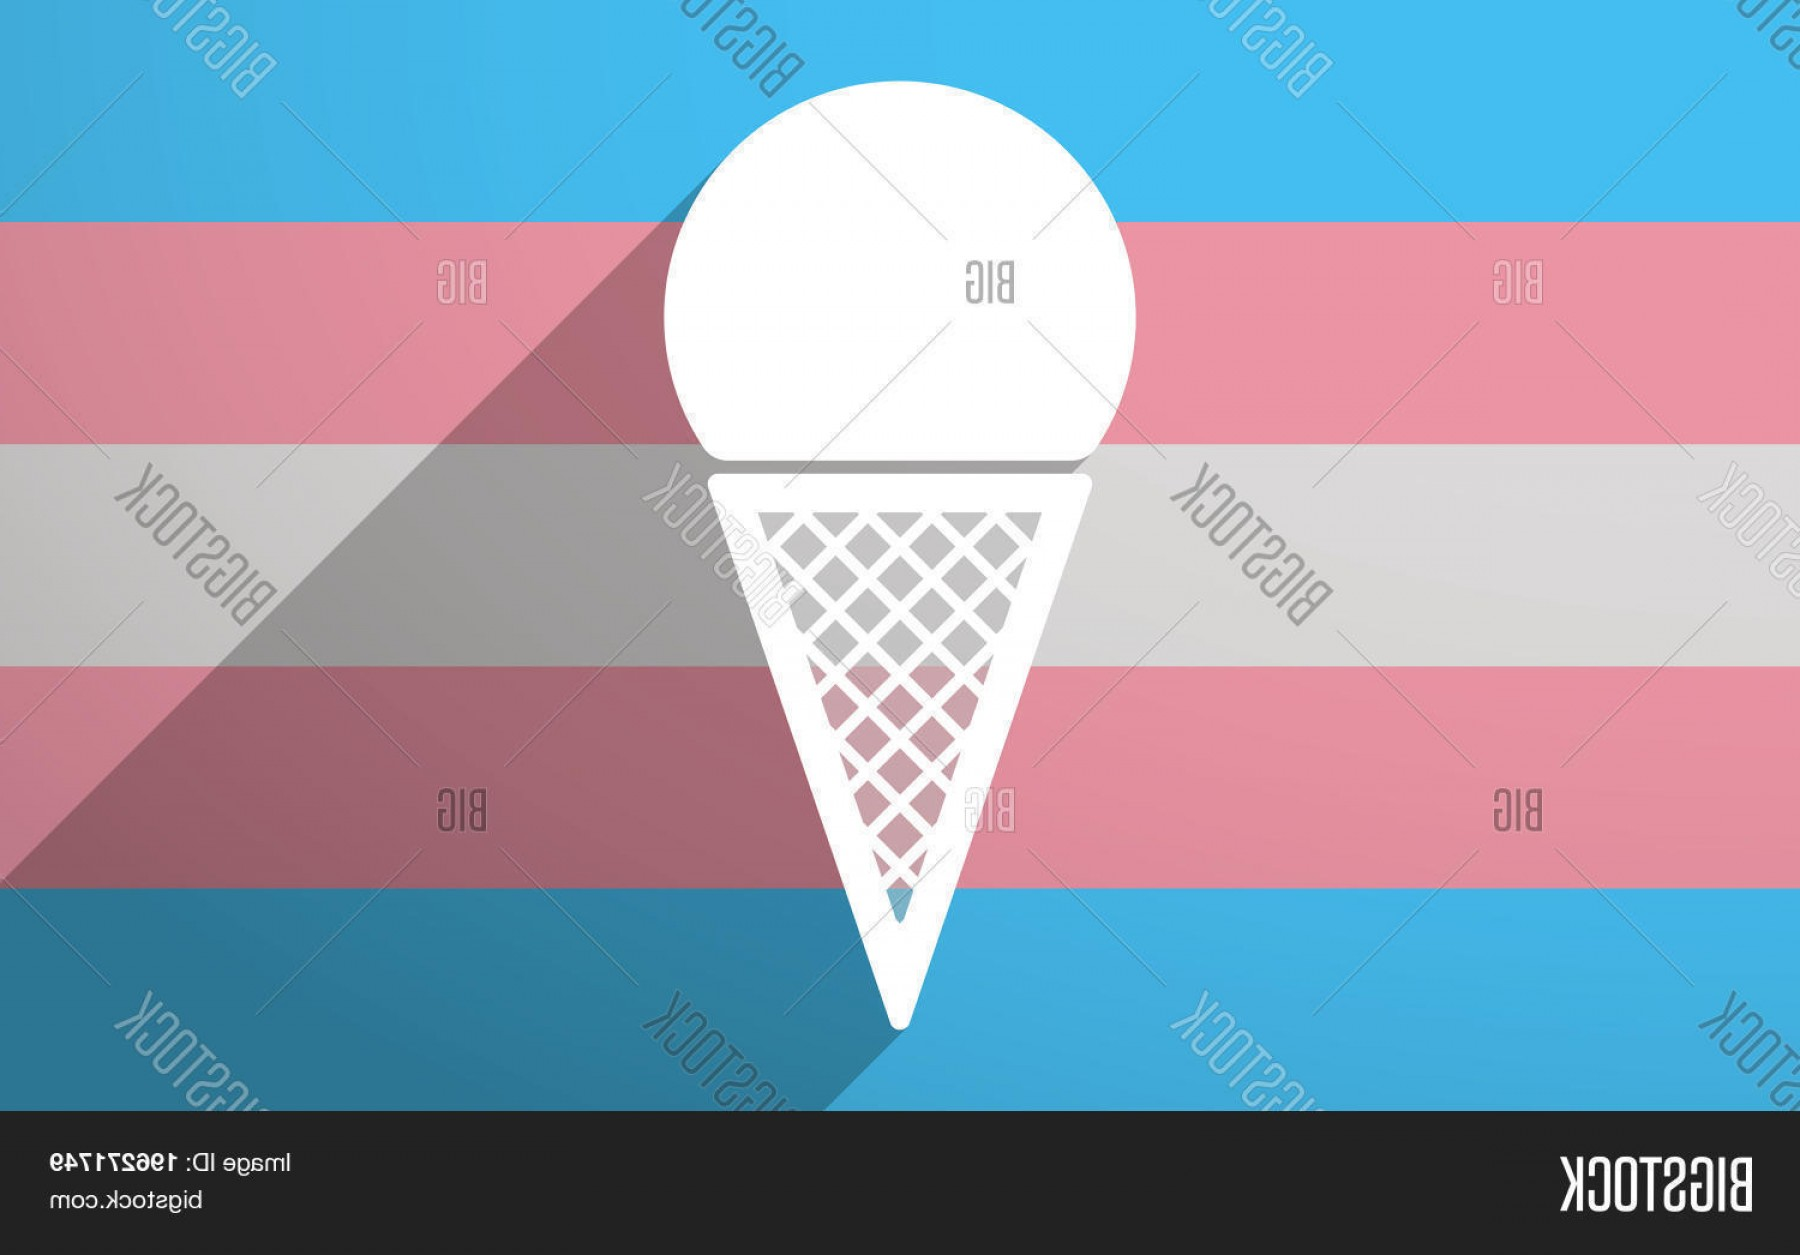 Snow Cone Vector Free: Stock Vector Long Shadow Trans Gender Flag With A Cone Ice Cream